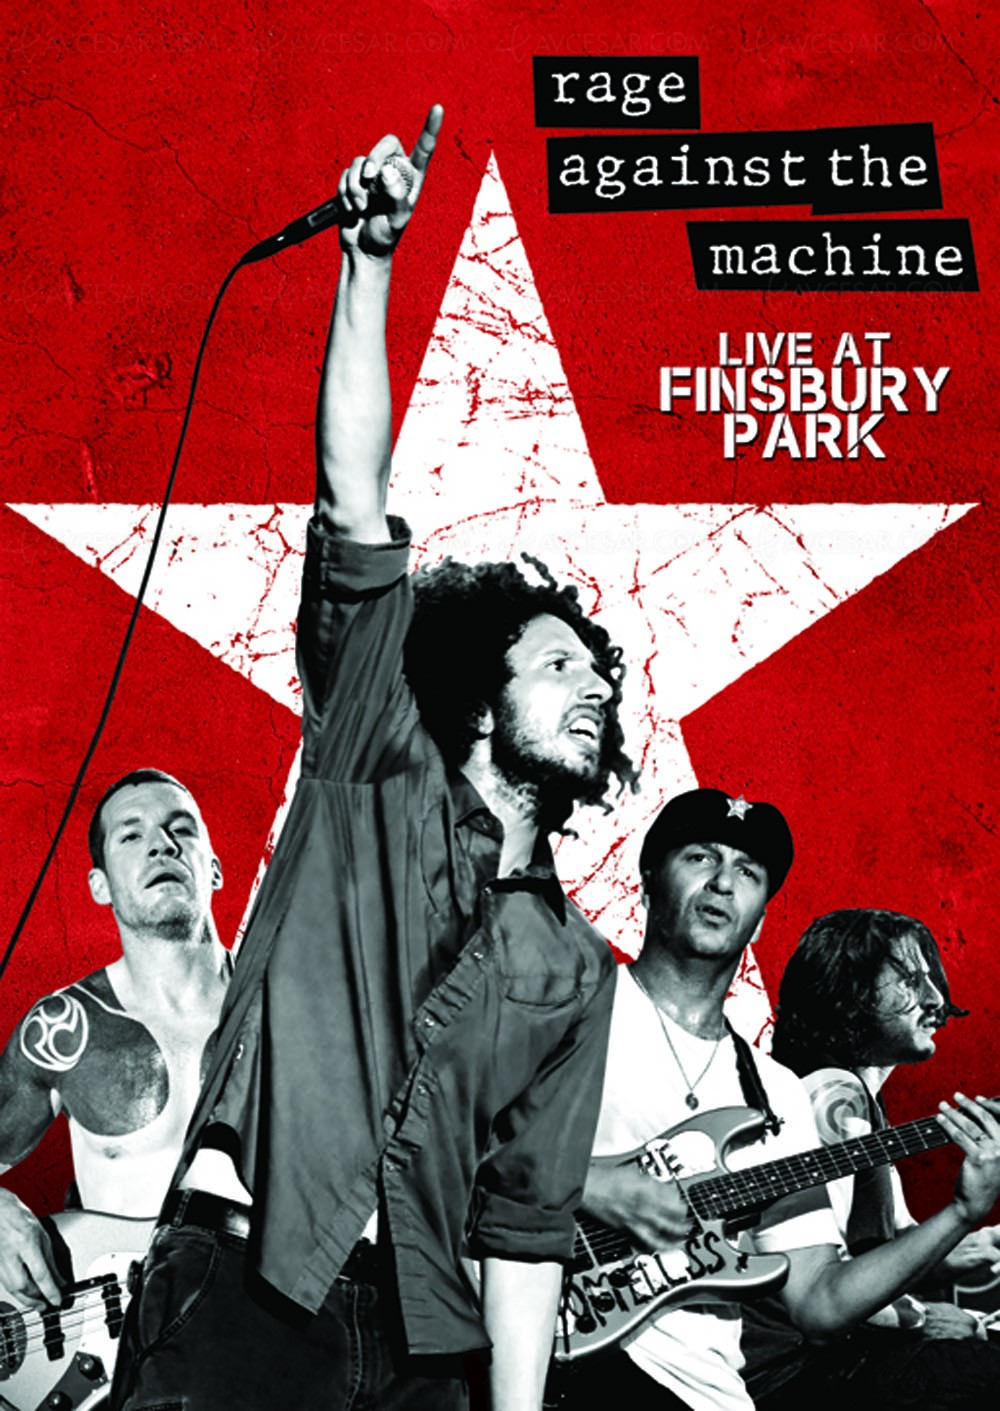 rage-against-the-machine-live-at-finsbury-park-en-blu-ray-dvd_085427